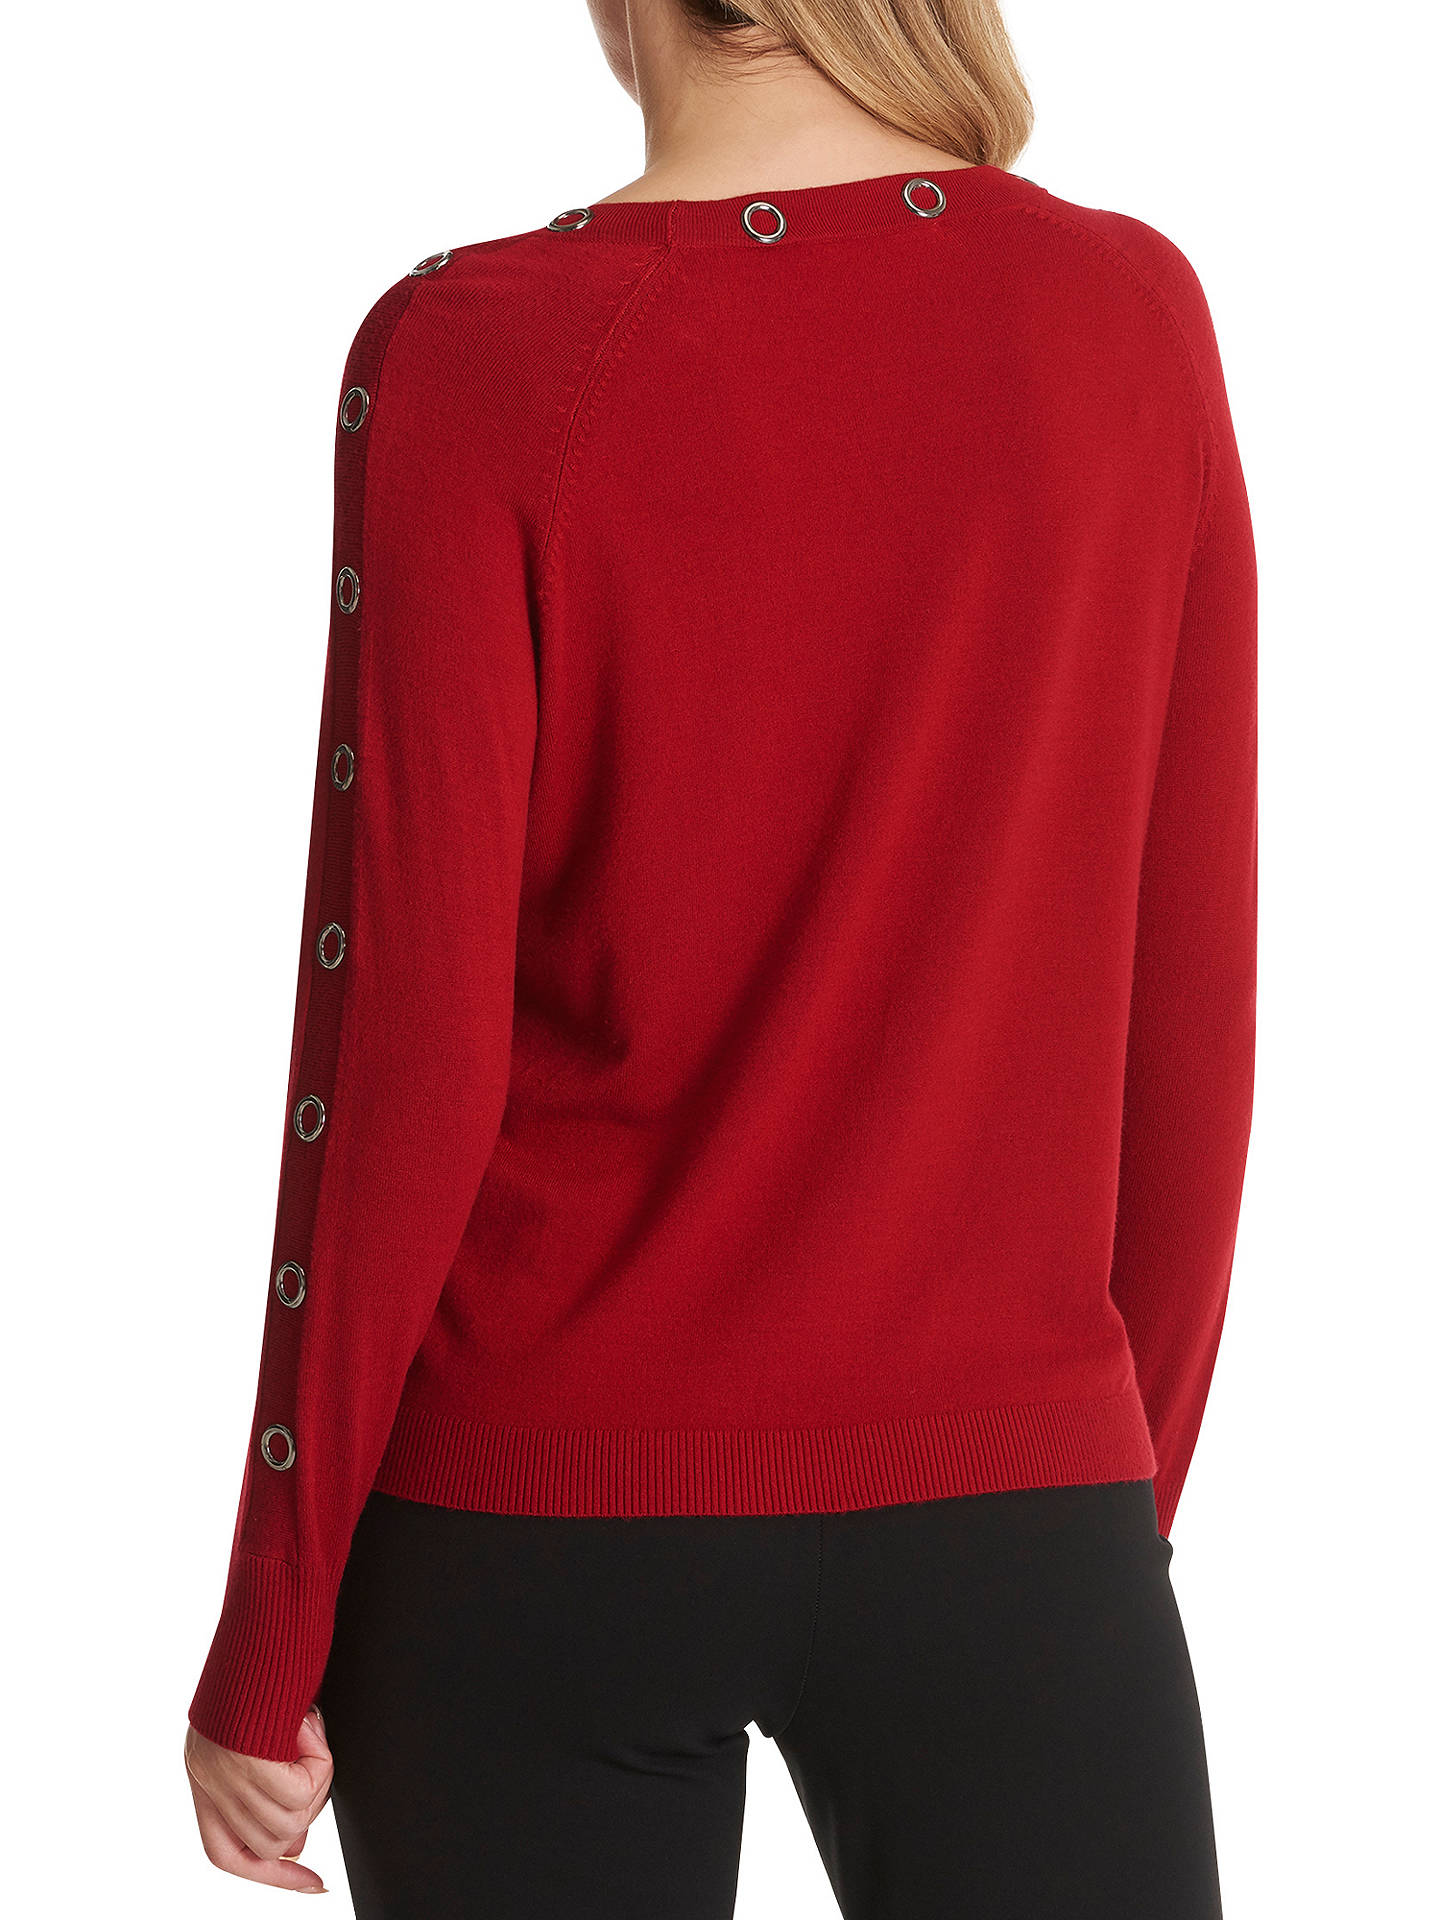 Buy Betty Barclay Keyhole Slit Metallic Knit Jumper, Chili Red, 10 Online at johnlewis.com